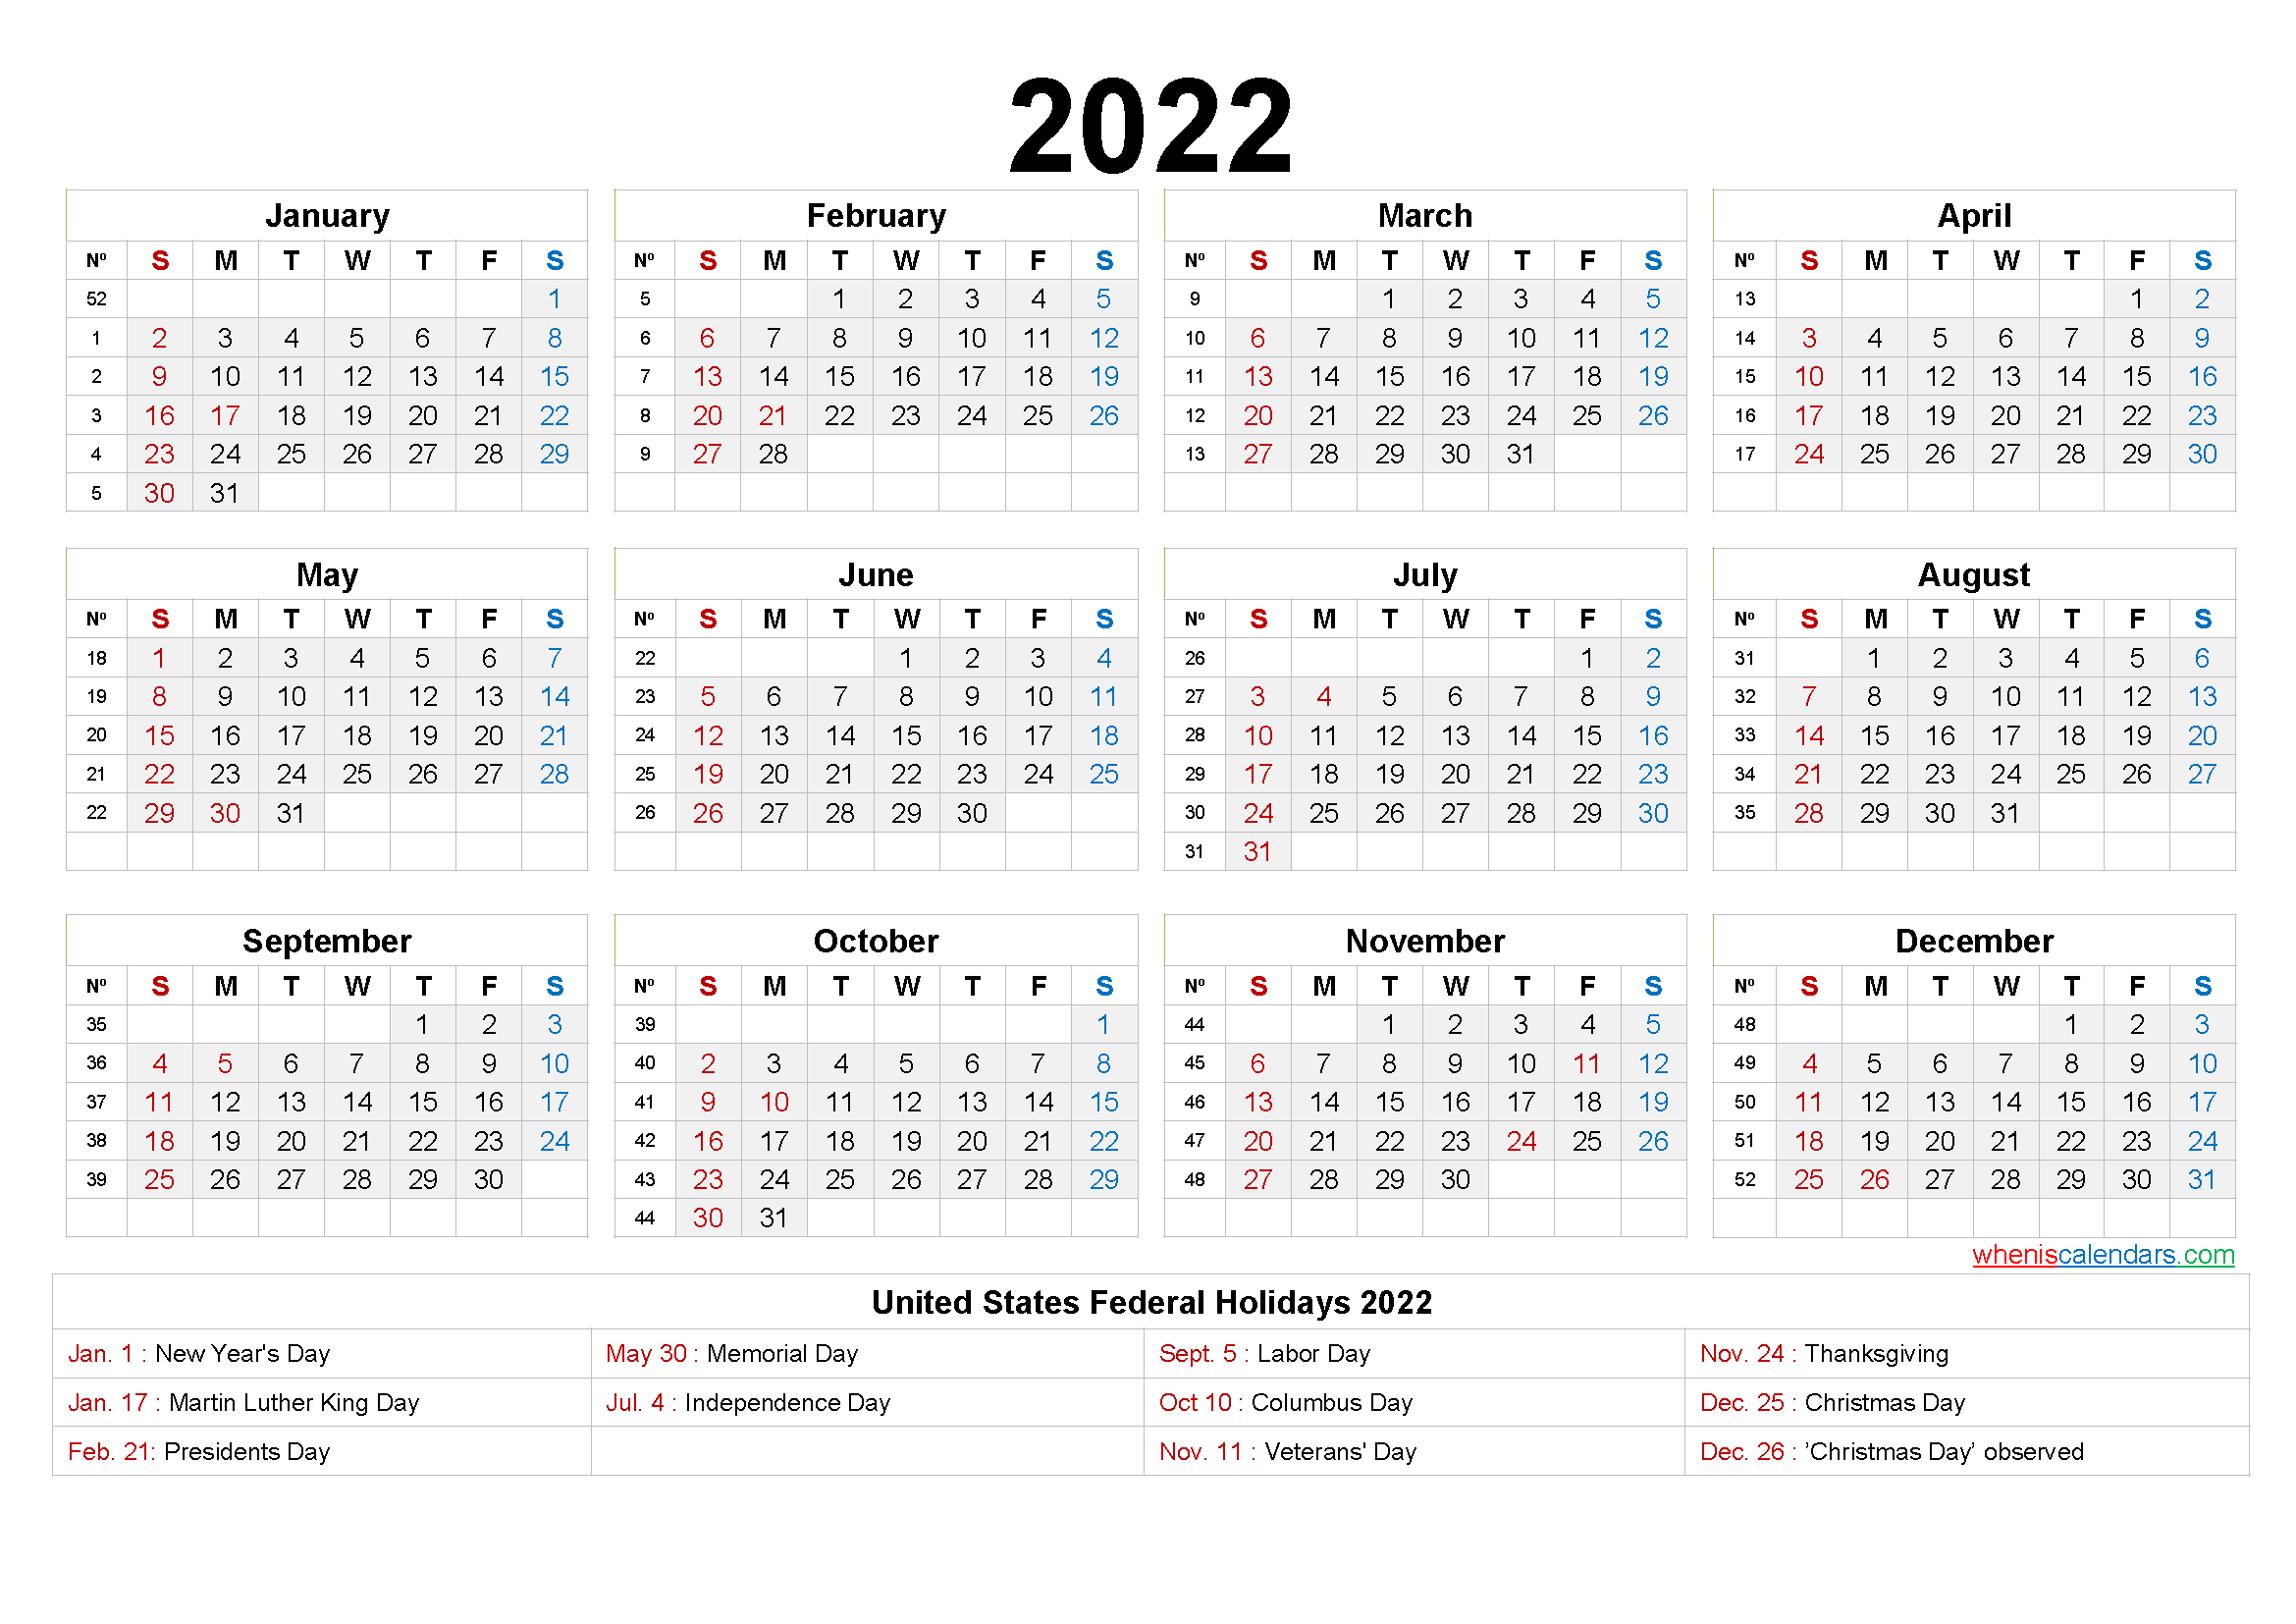 Year 2022 printable yearly and monthly calendars with holidays and observances. 20+ Yearly Calendar 2022 - Free Download Printable ...